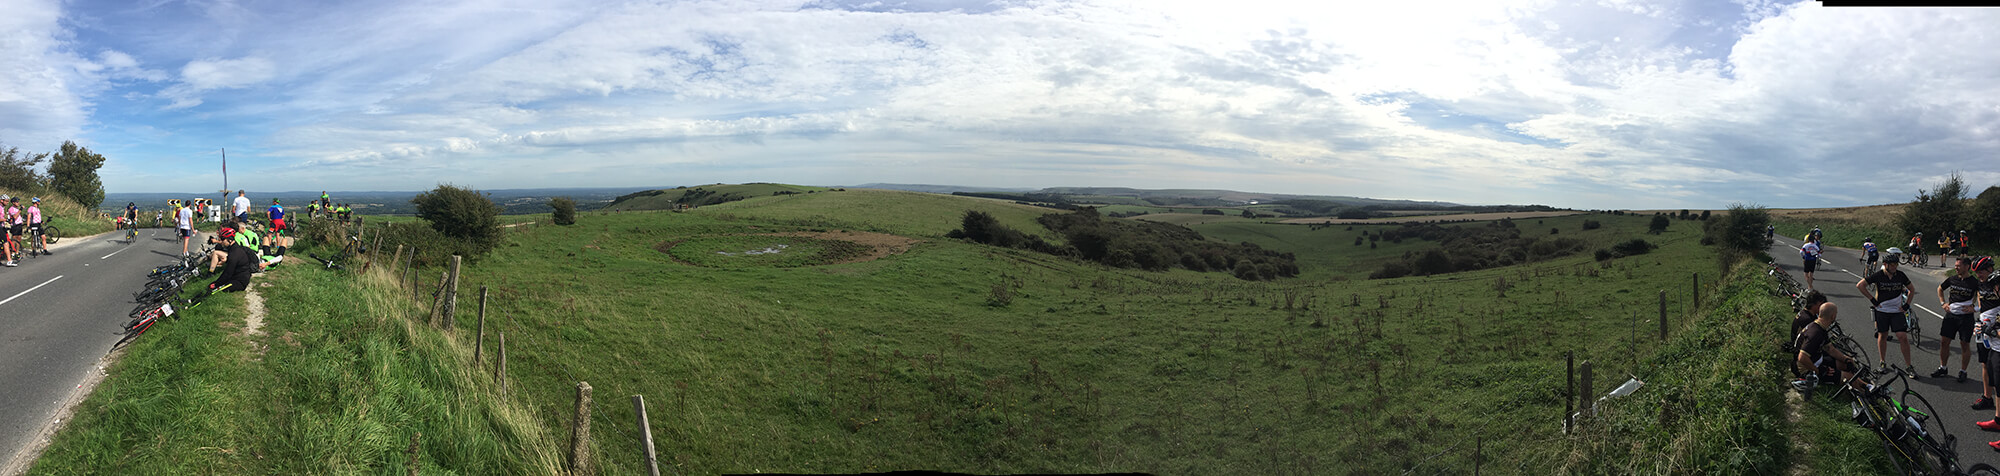 Ditchling Beacon pano